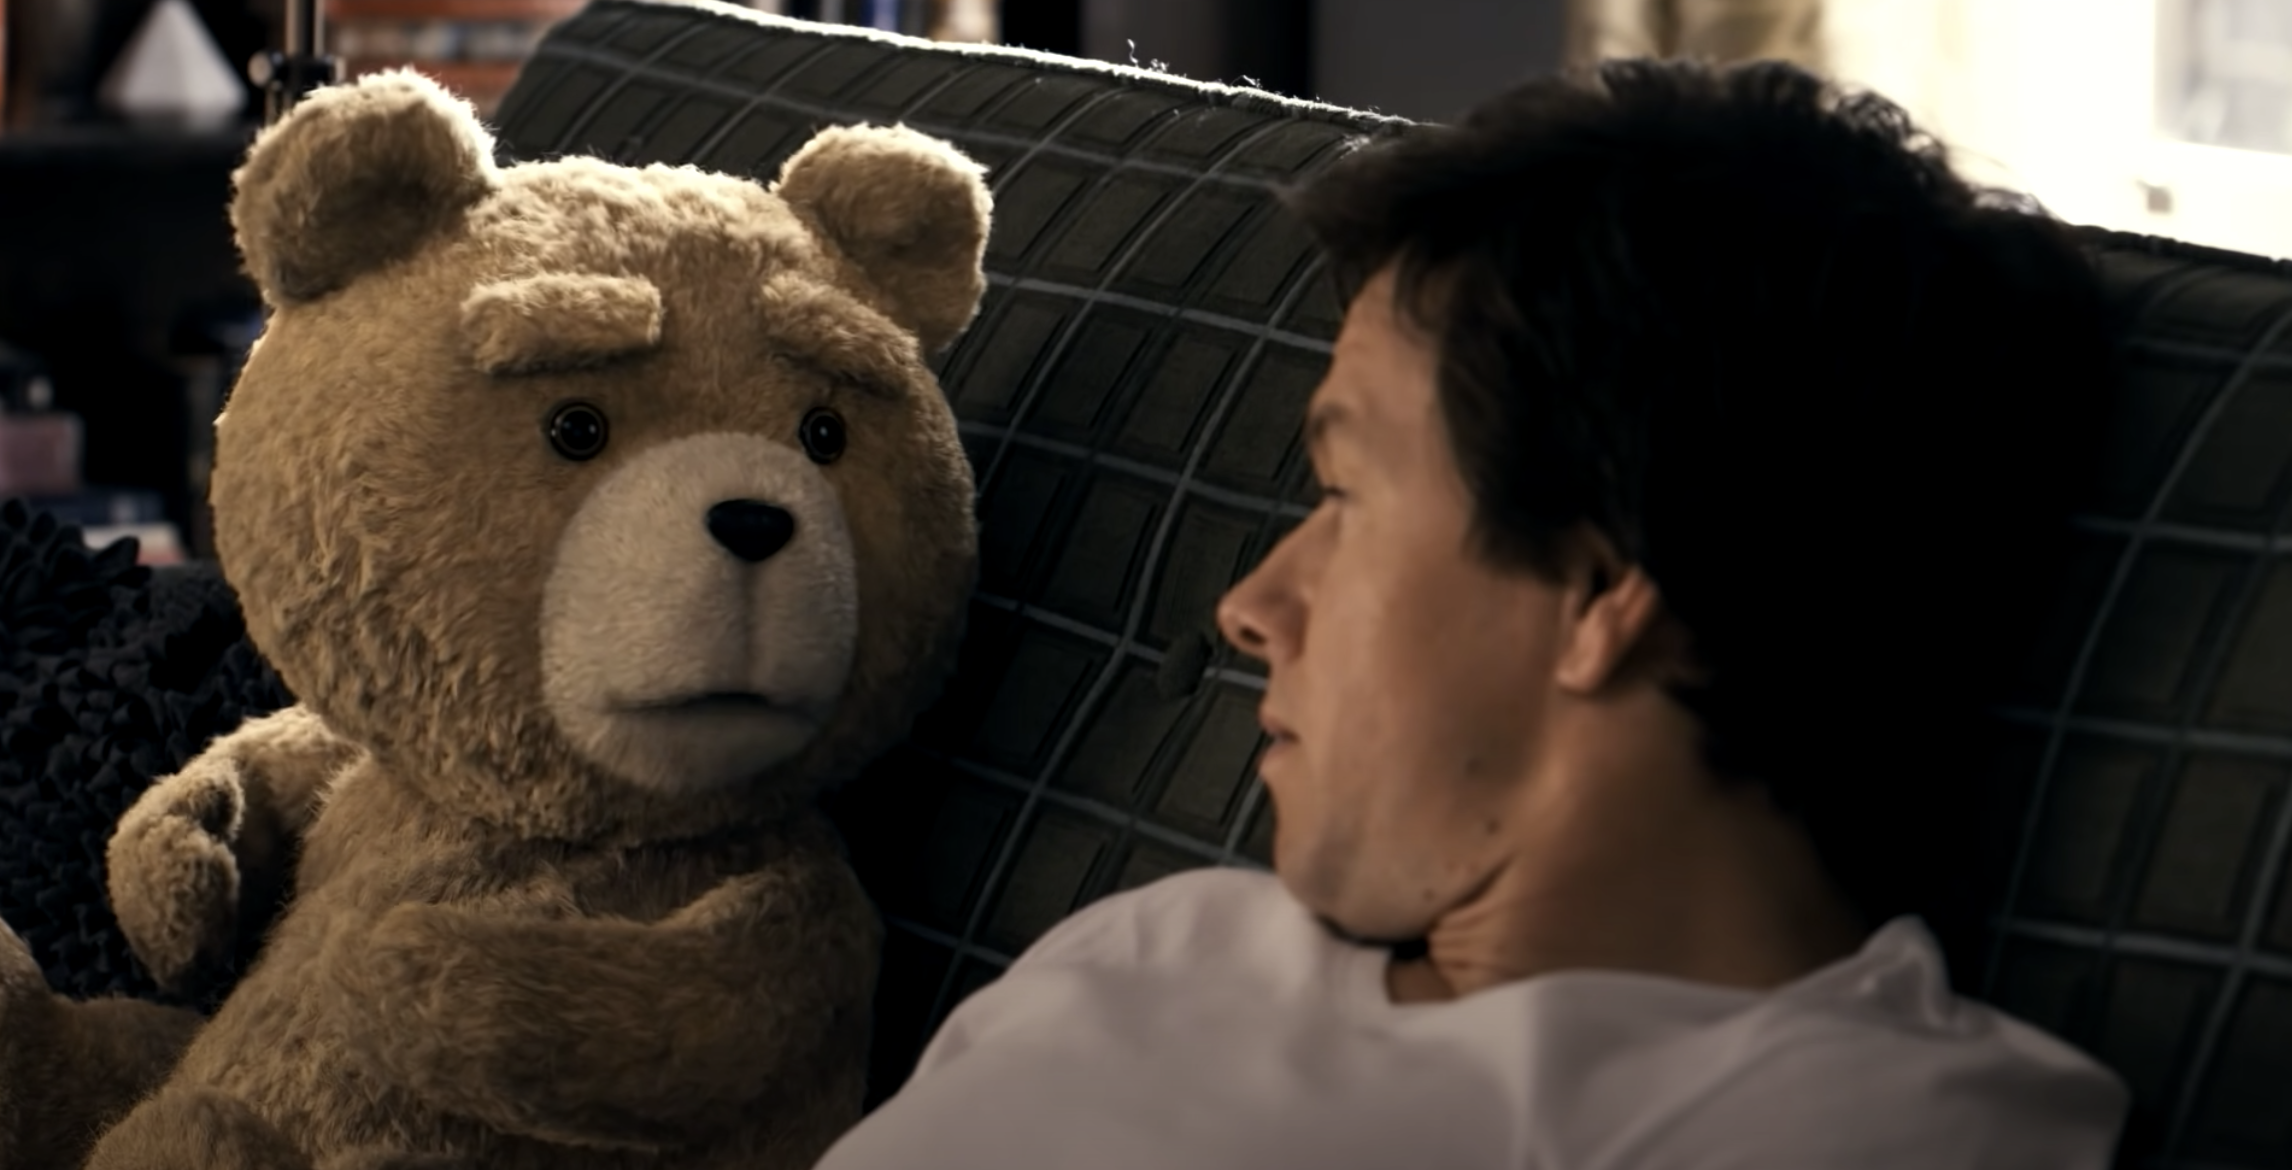 Ted the bear and Johnny sitting on their couch in Ted